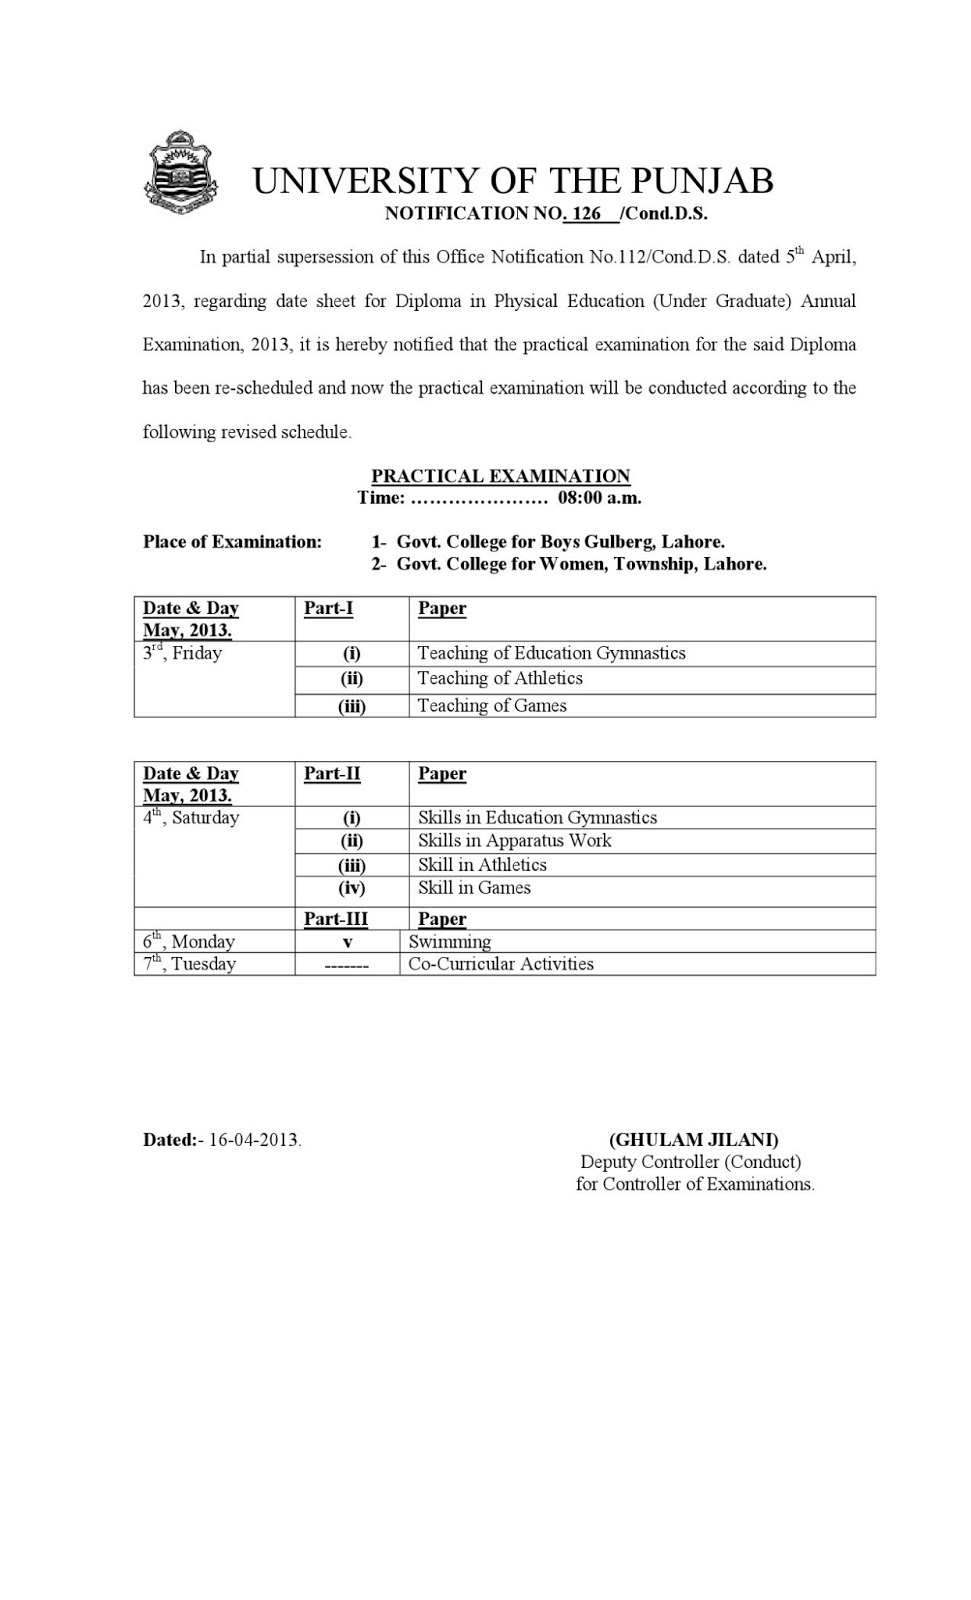 University of the Punjab REVISED PRACTICAL DATE SHEET FOR ...